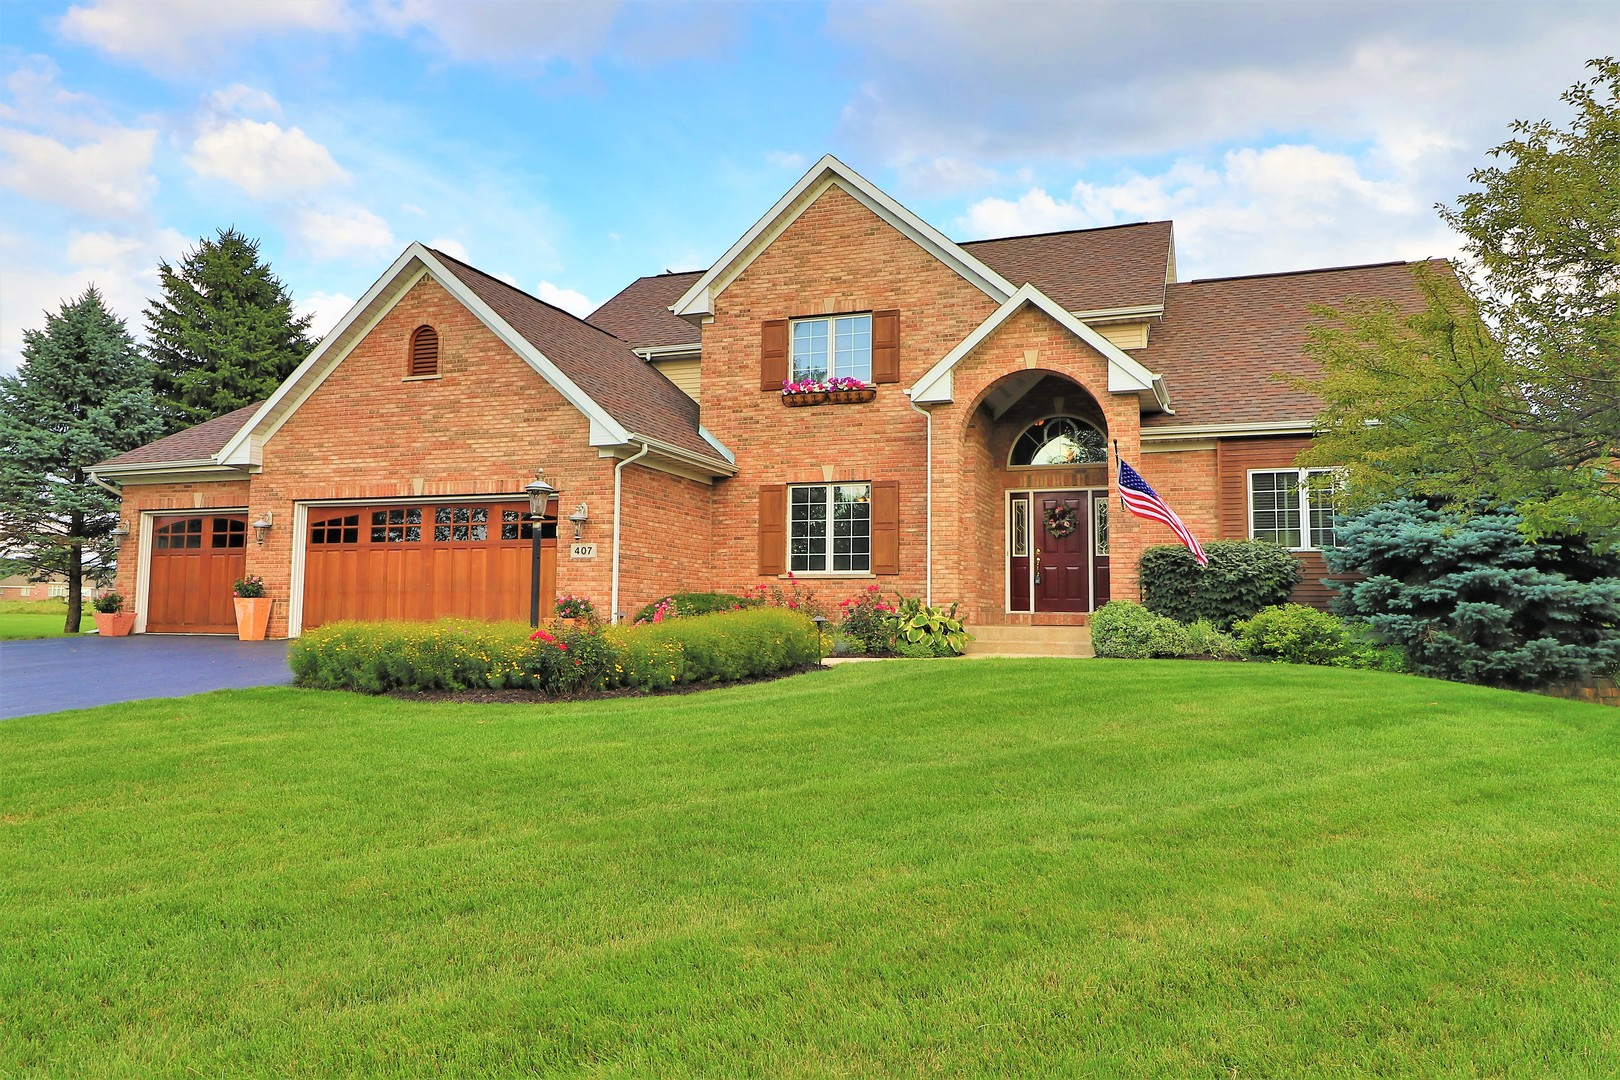 407 Muirfield Close, Poplar Grove, Illinois, 61065